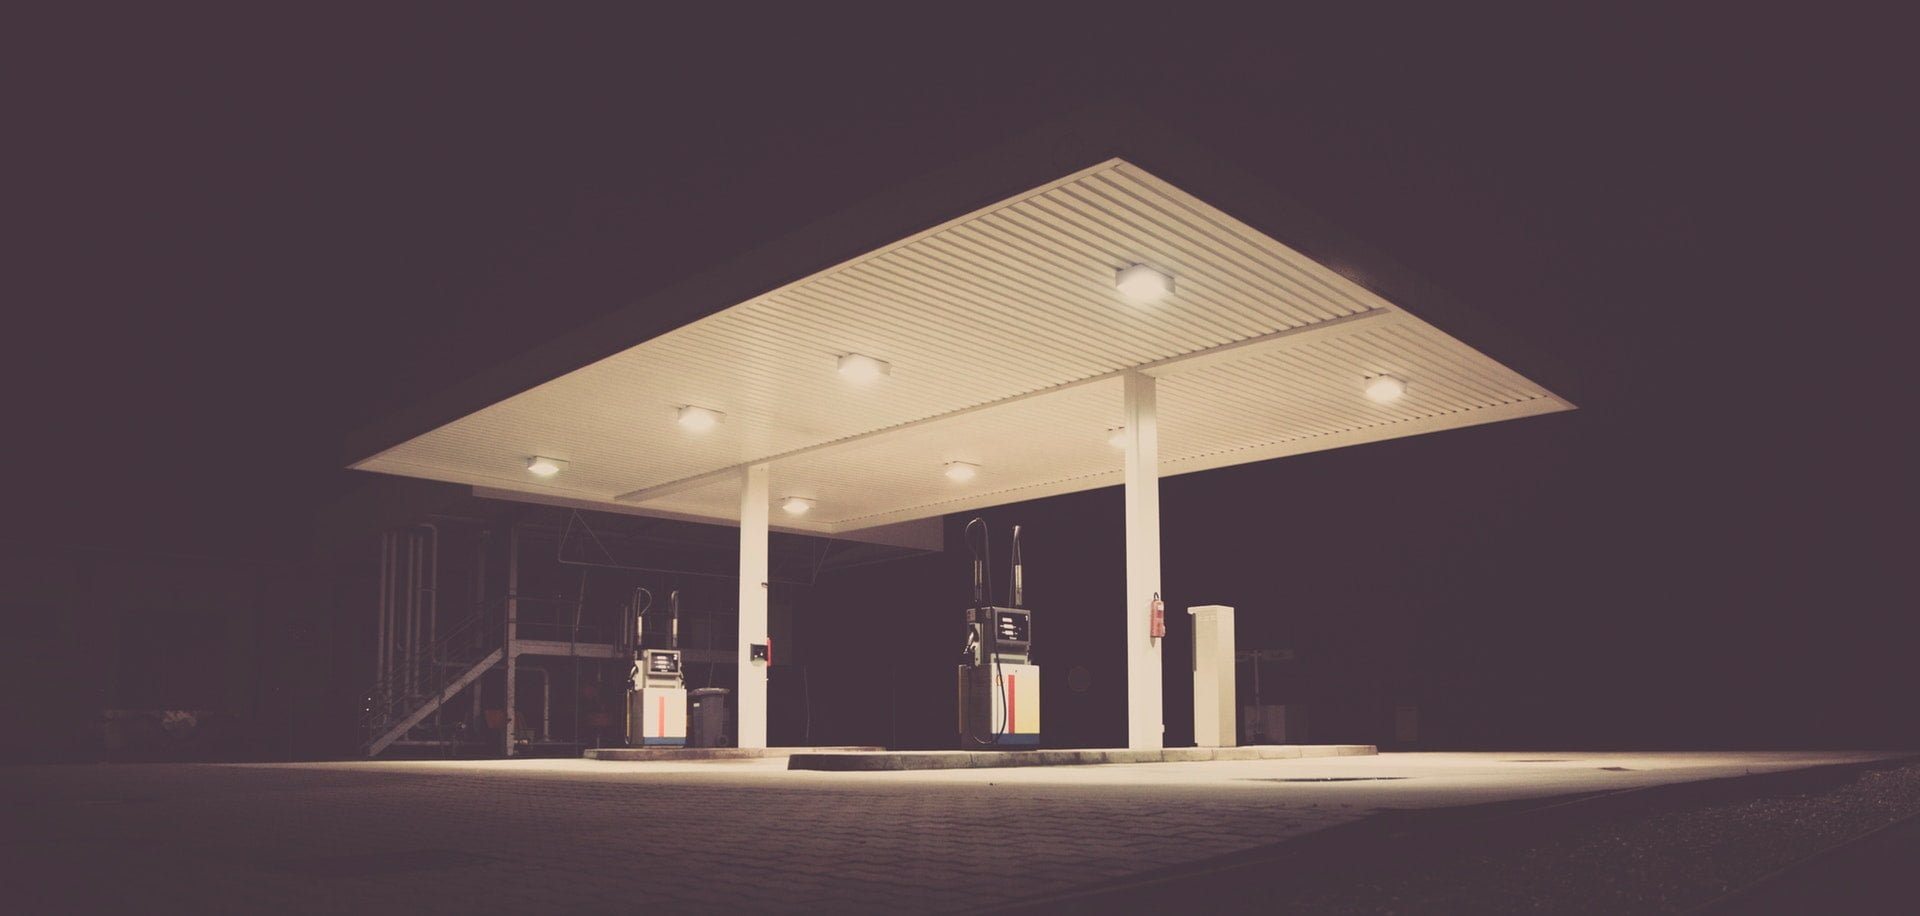 gasoline station during night time 2 In which 7 oil gas stations can bulk kerosene be purchased for distribution?